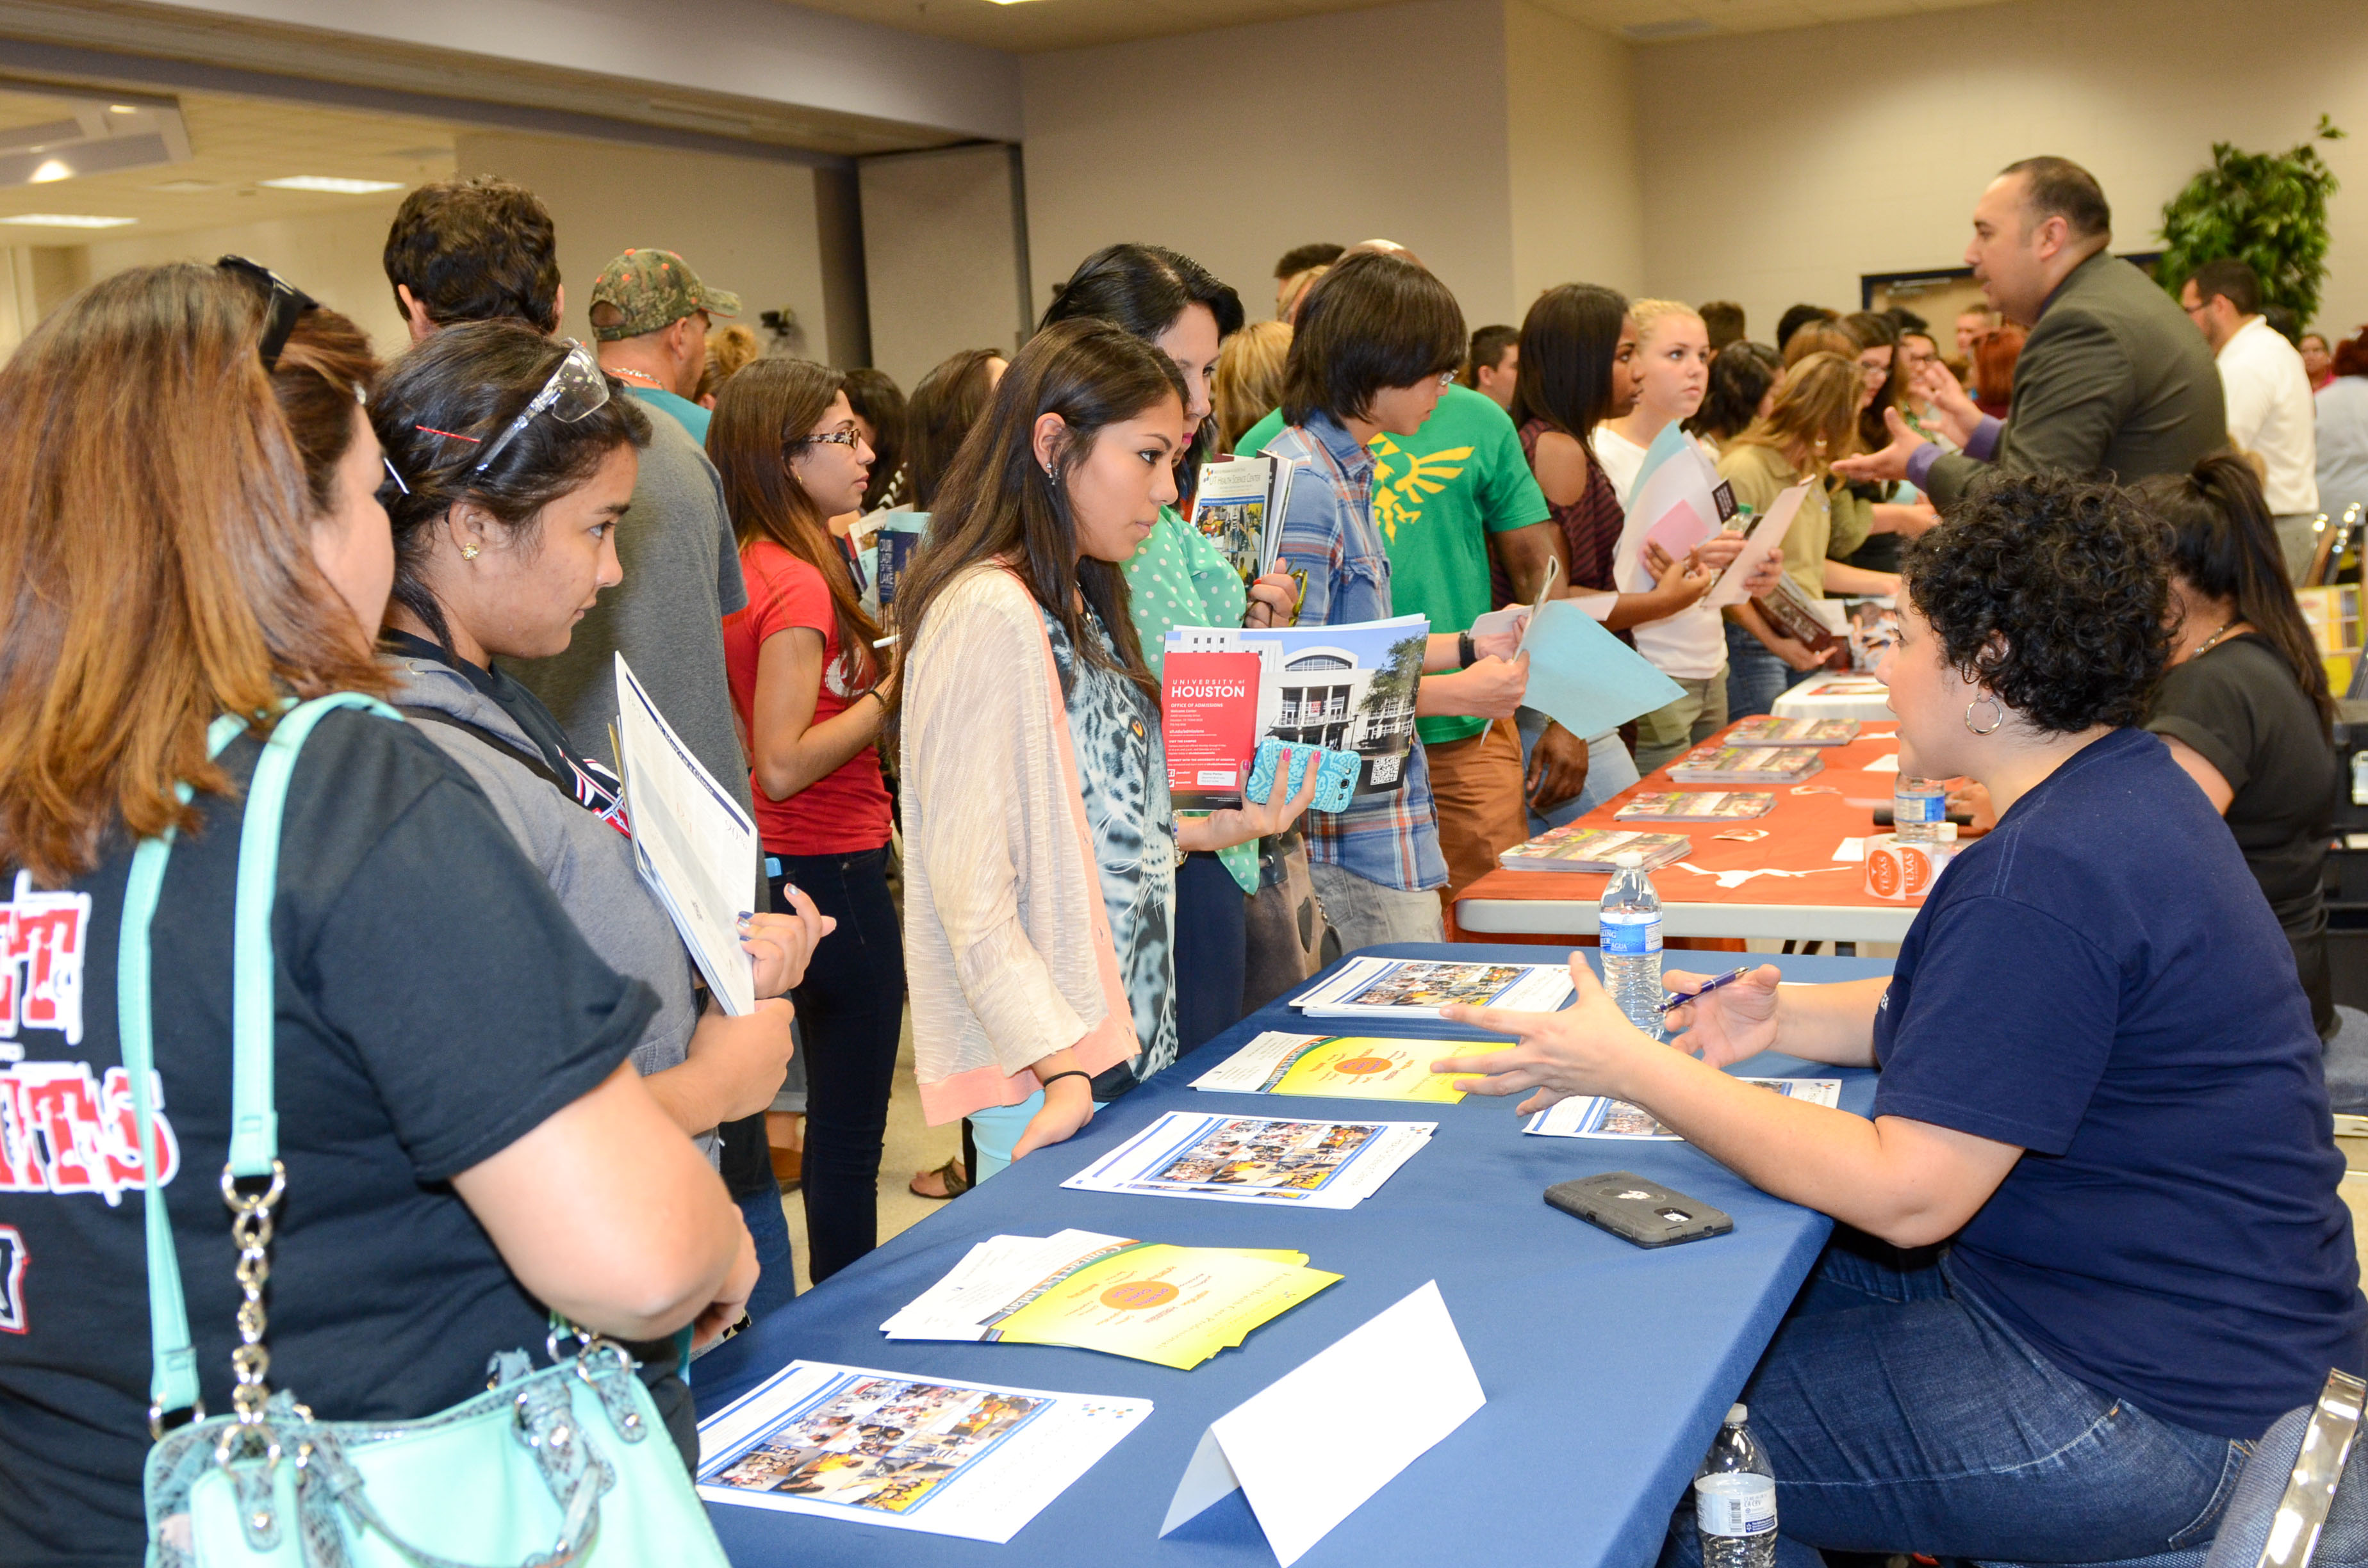 HCISD seniors and parents invited to attend informational session on financial aid